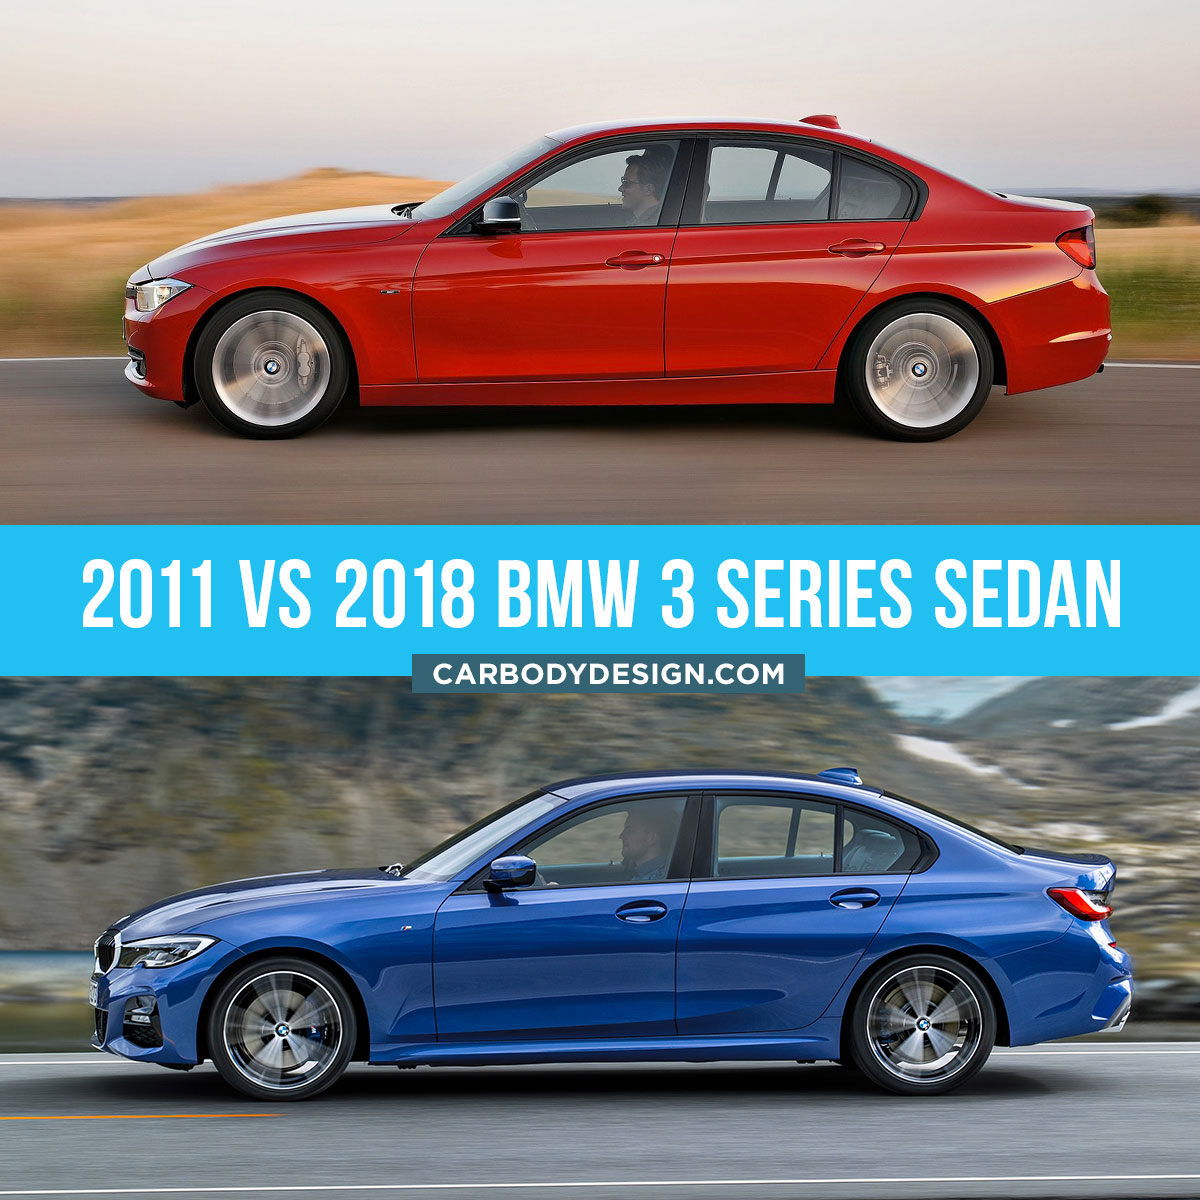 2011 vs 2018 BMW 3 Series Sedan design Comparison Side View